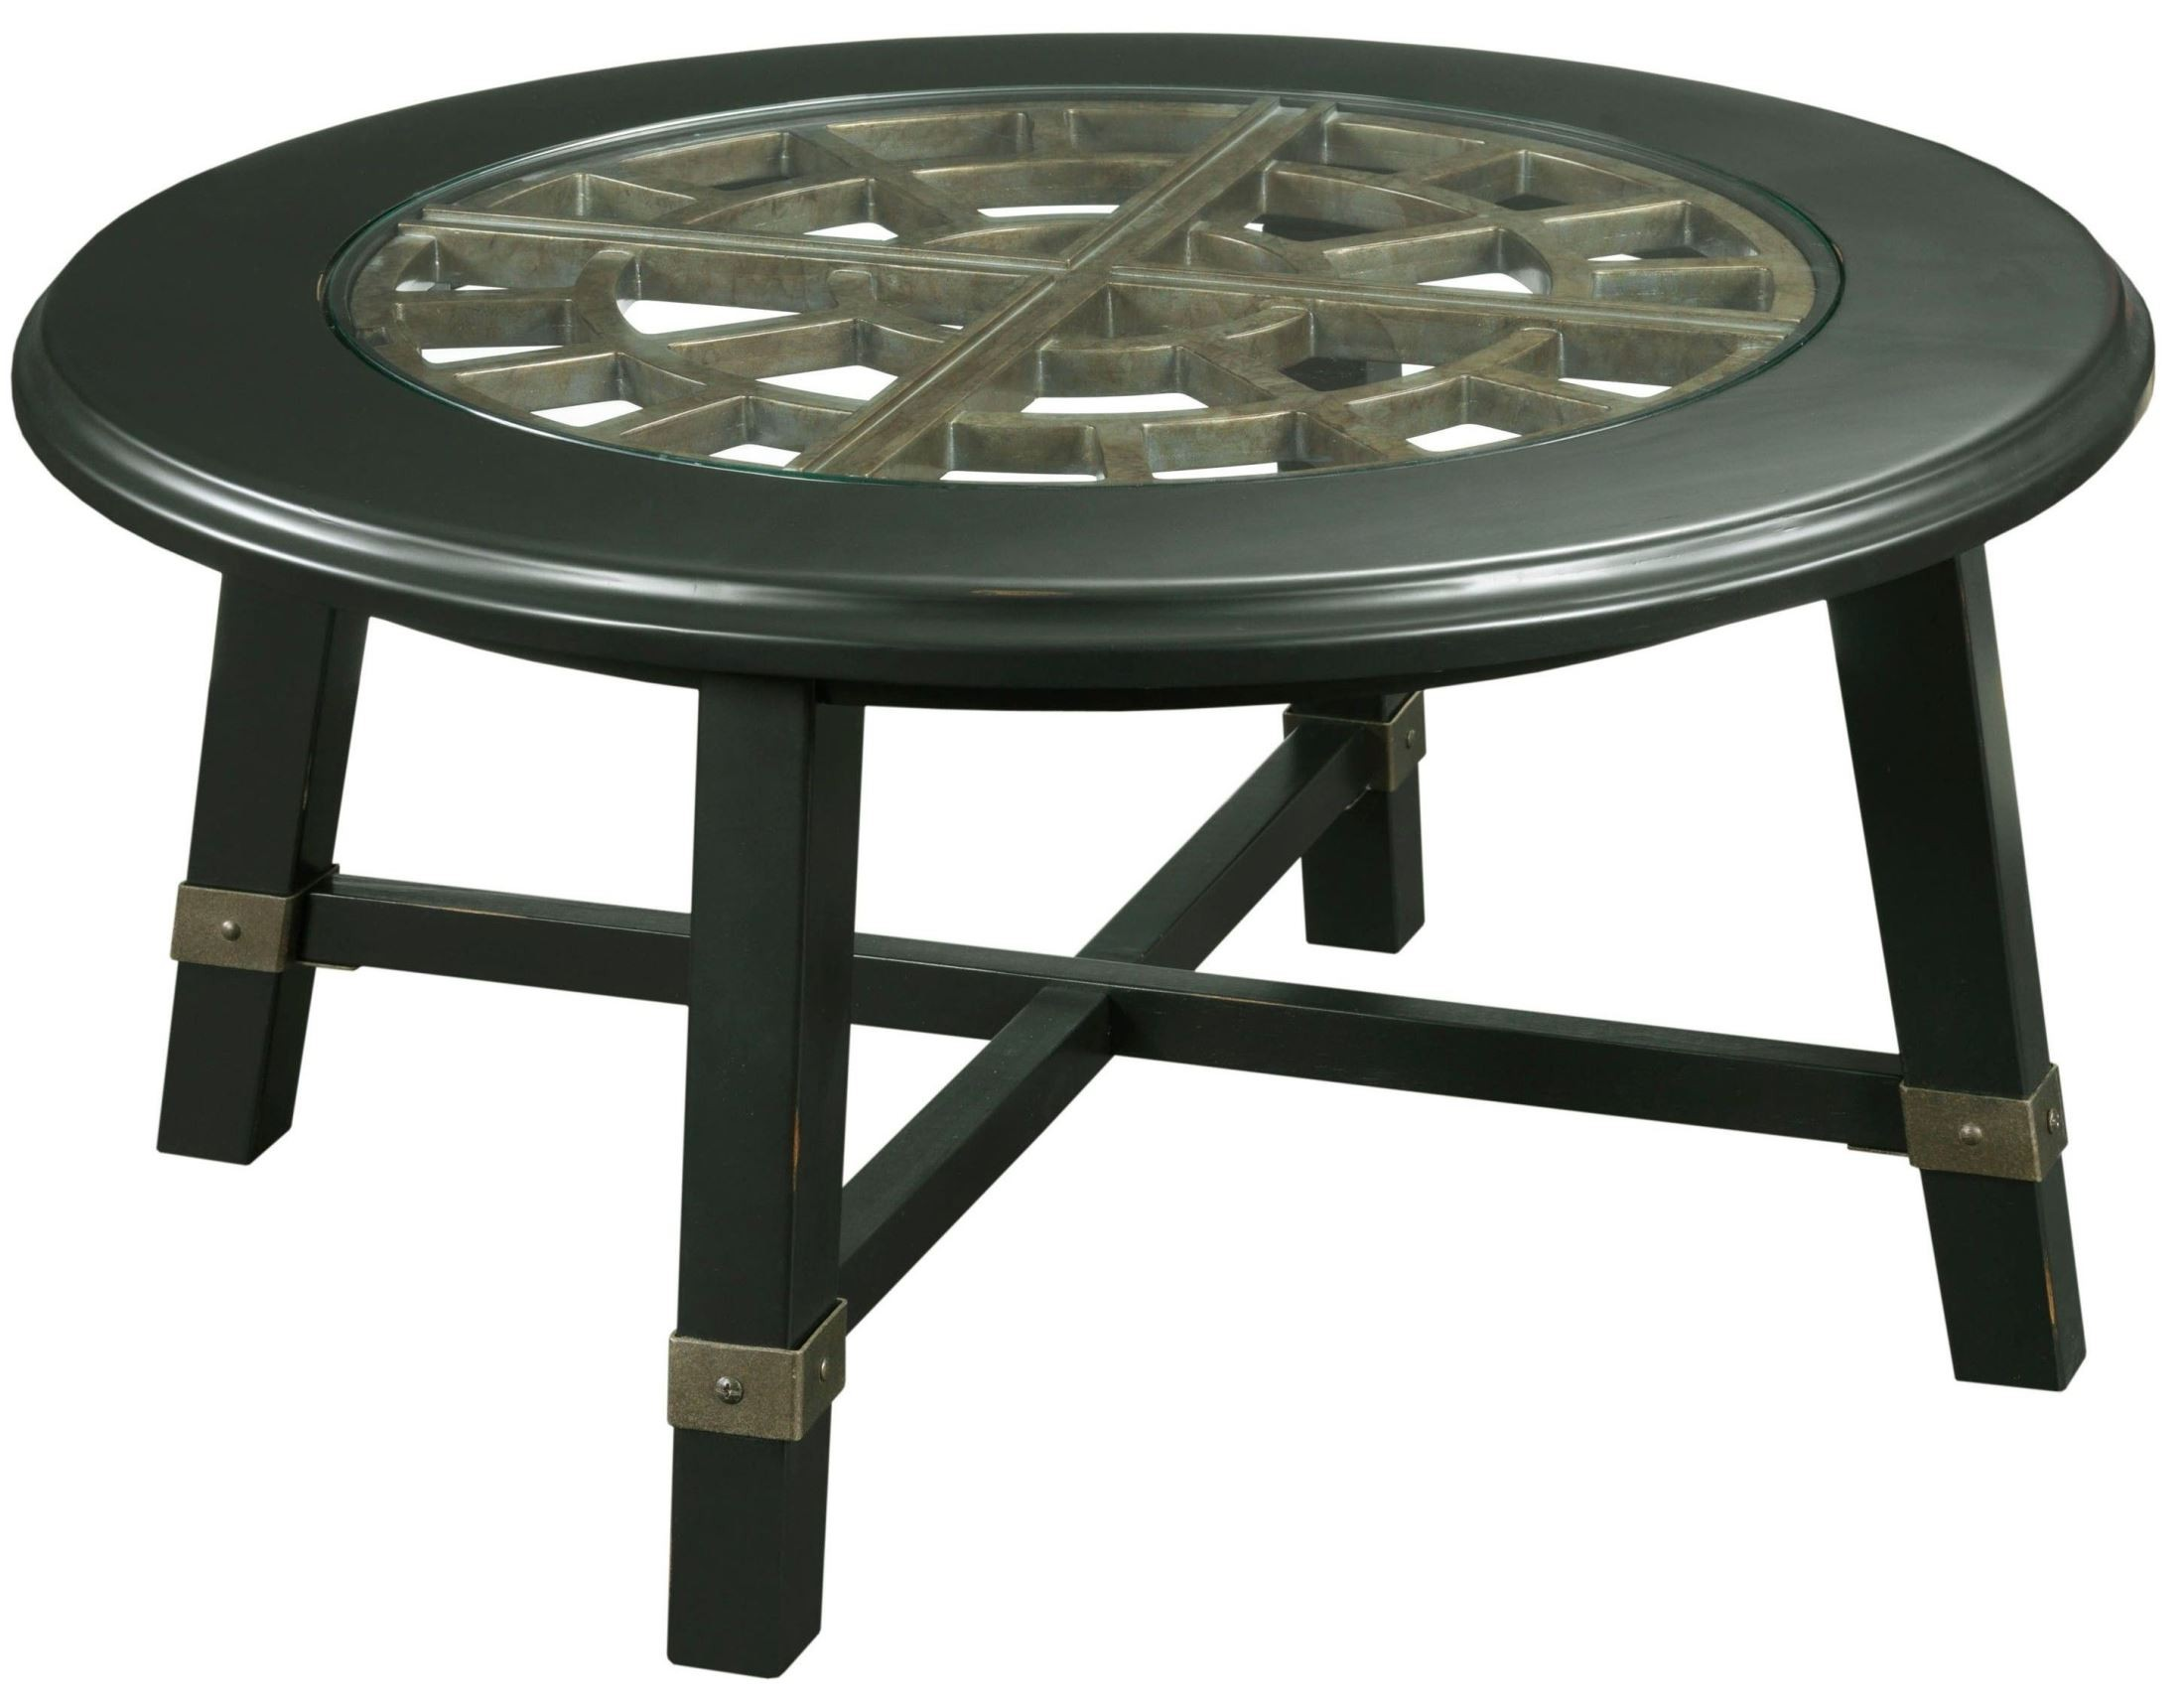 New Vintage Black Round Grid Cocktail Table From Broyhill 4809 003 Coleman Furniture